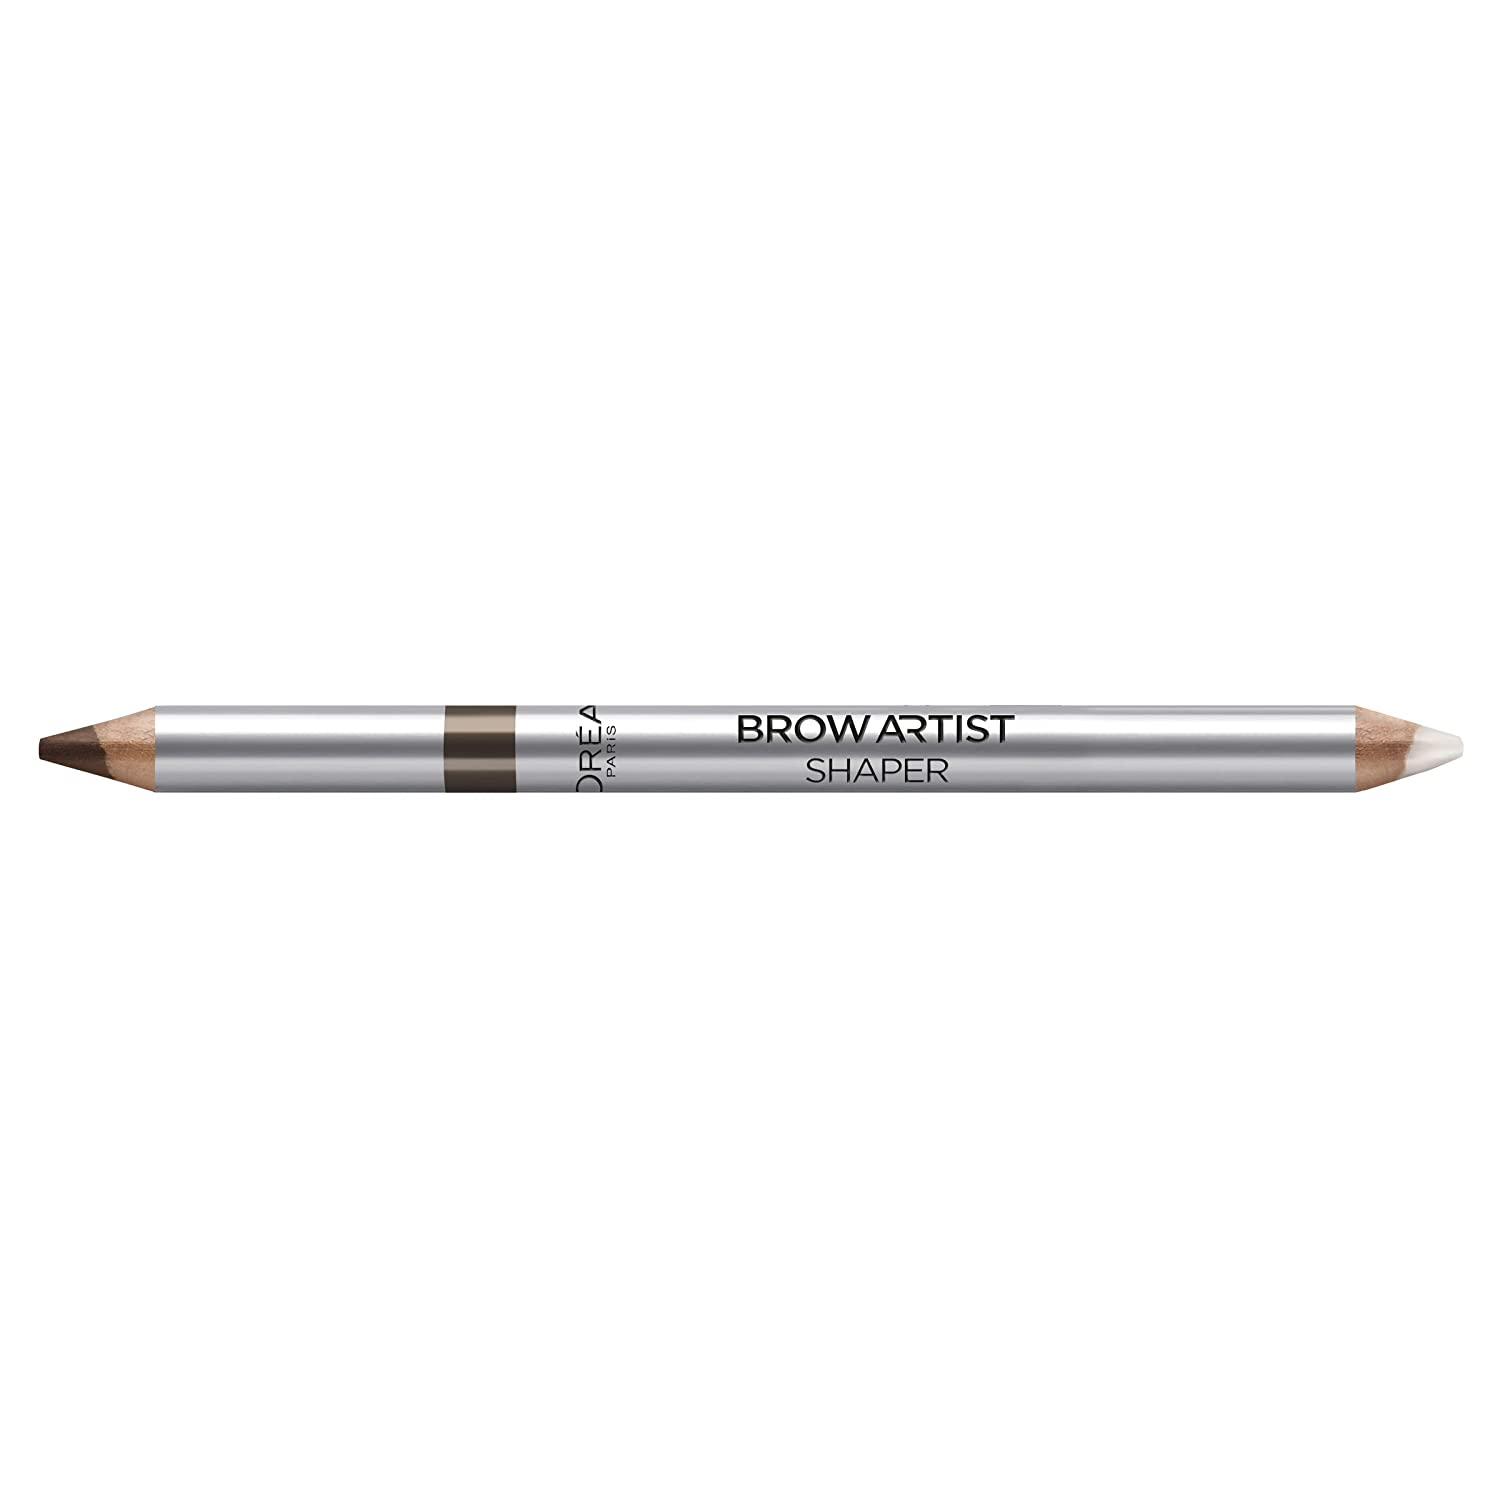 L'Oreal Paris Brow Artist Pencil 03 Brunette L' Oréal Paris 3600522426813